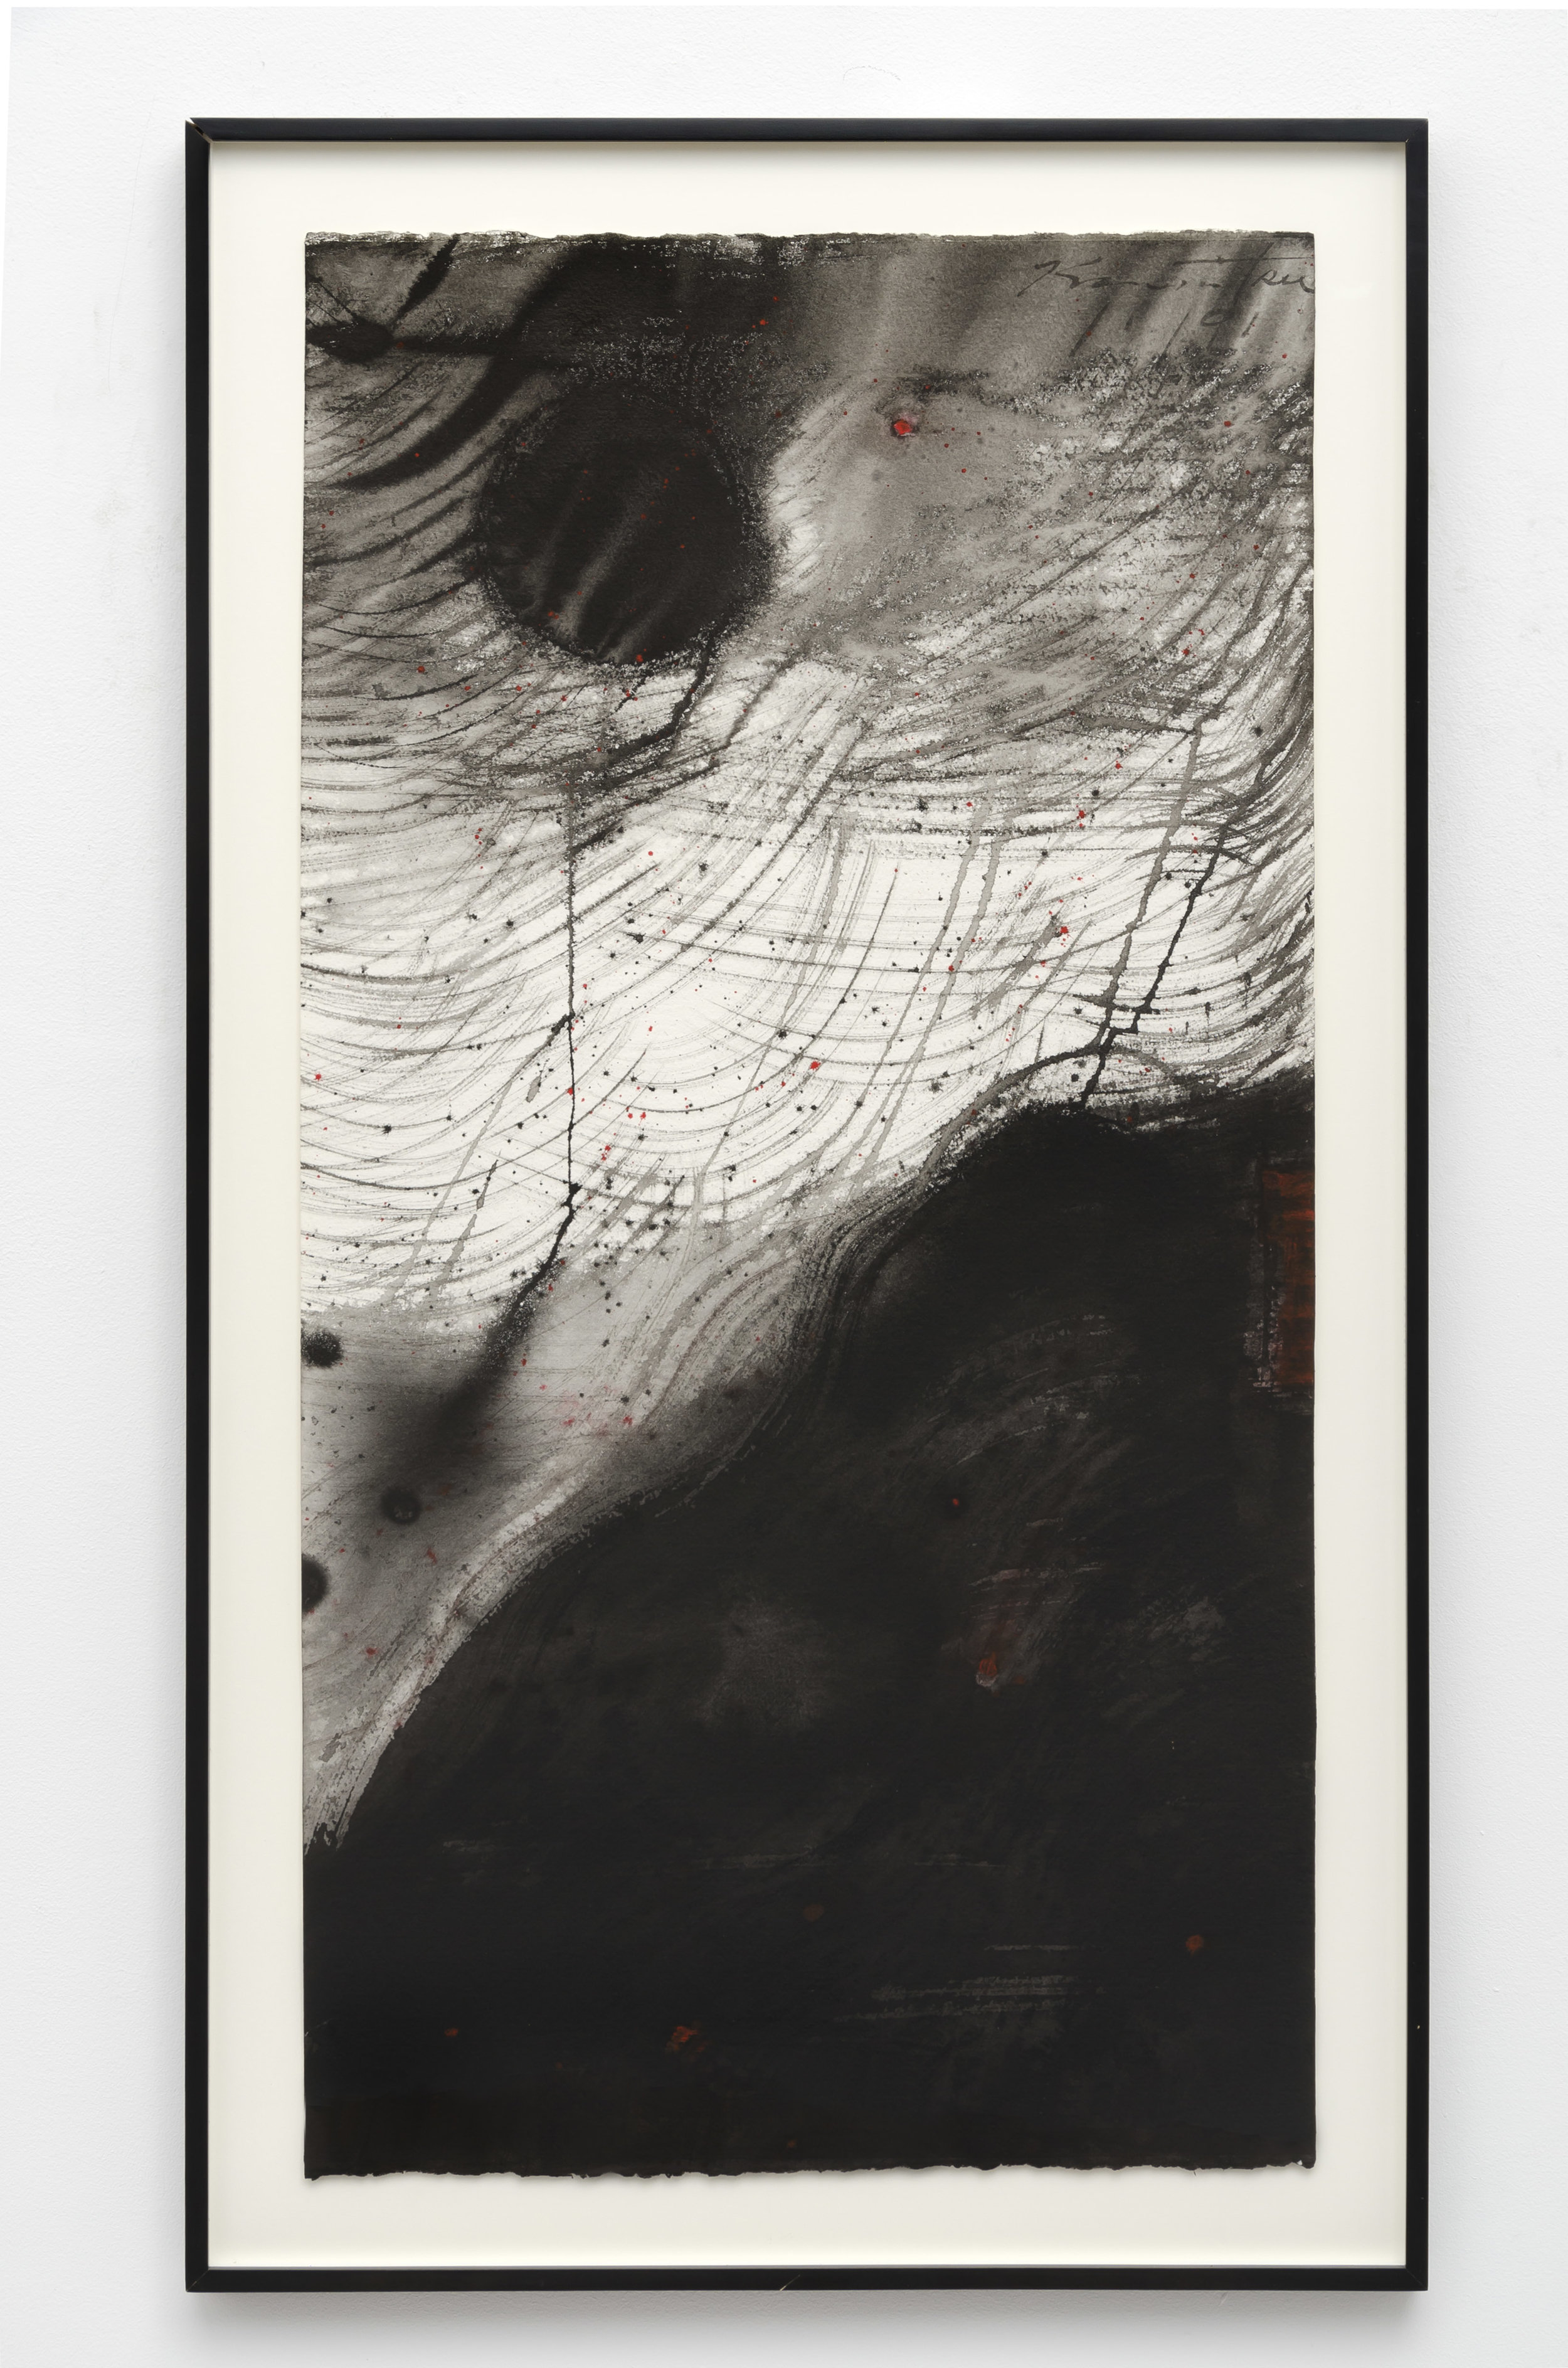 Untitled 1-91 , 1991 sumi on paper 45 1/4 x 25 3/8 inches; 114.9 x 64.5 centimeters